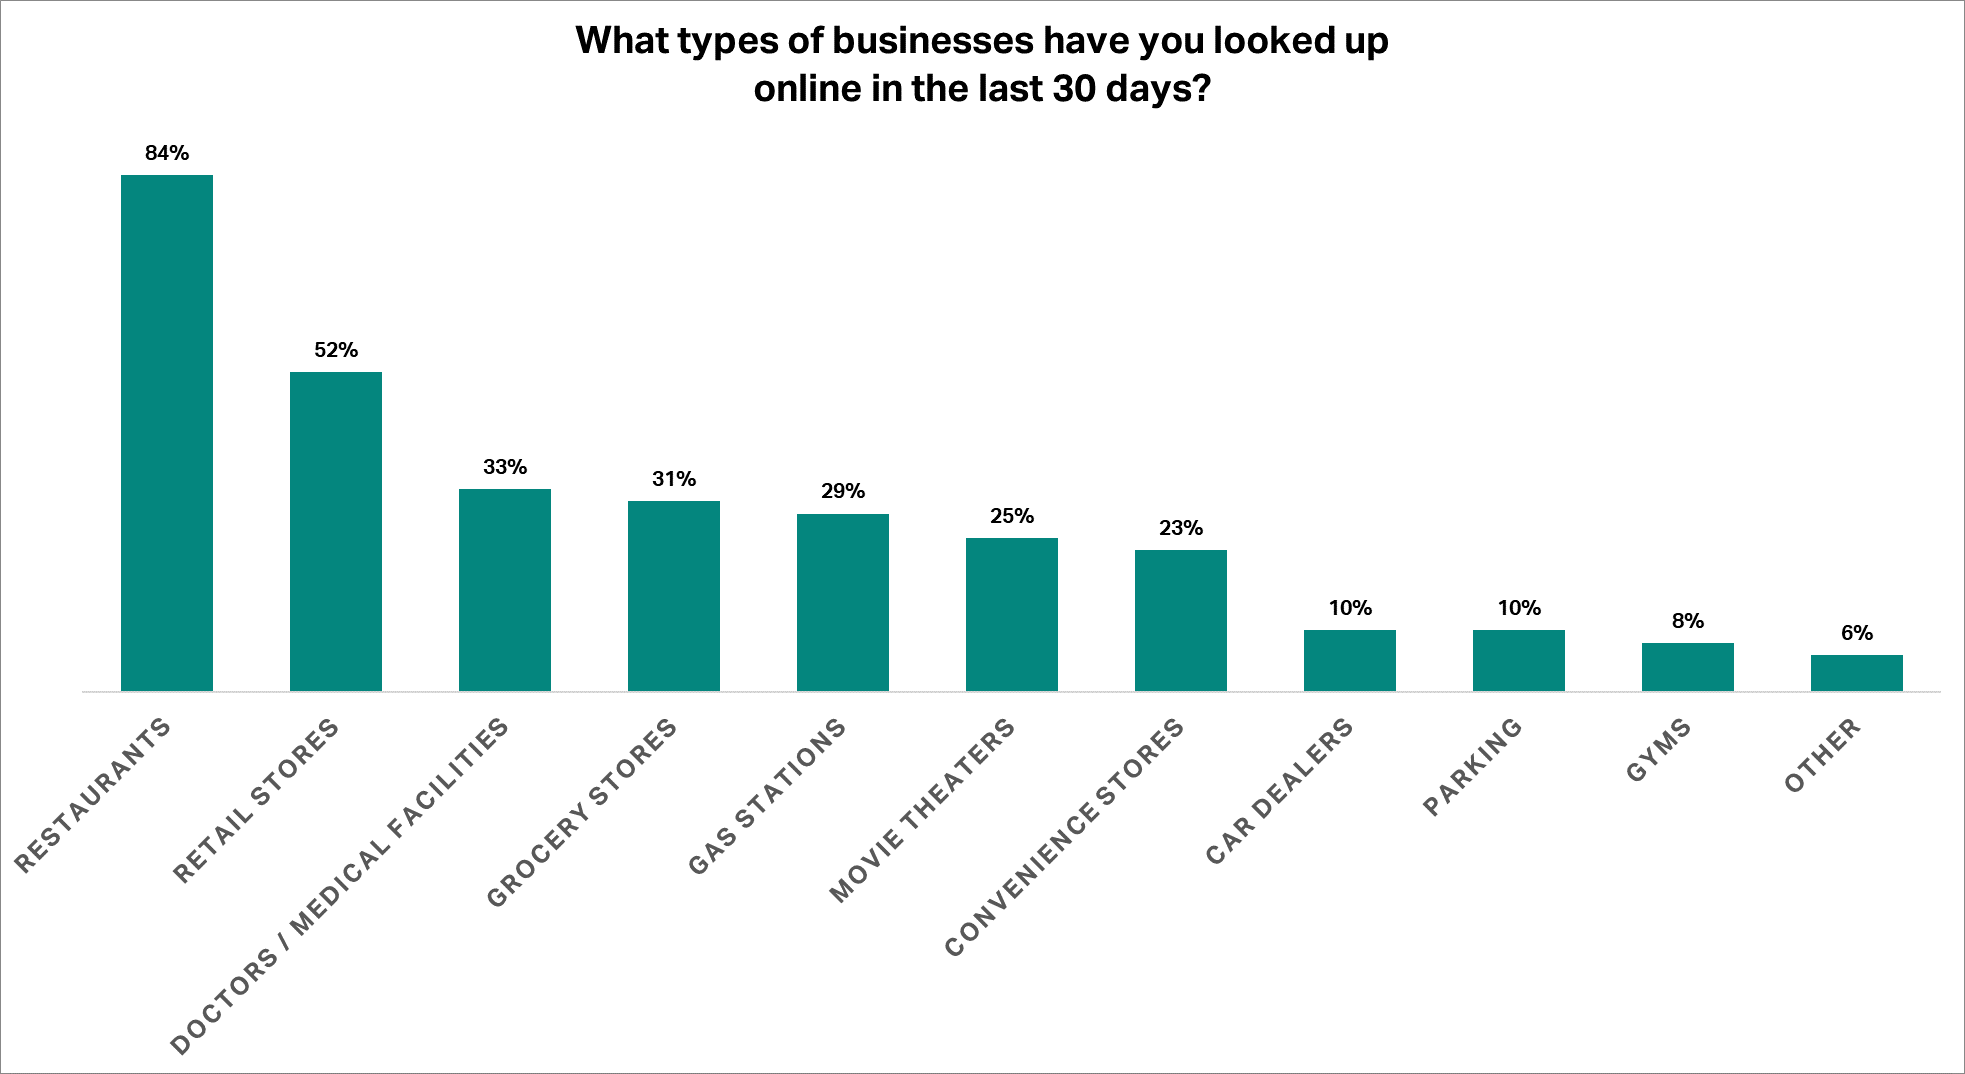 What types of businesses have you looked up online in the last 30 days